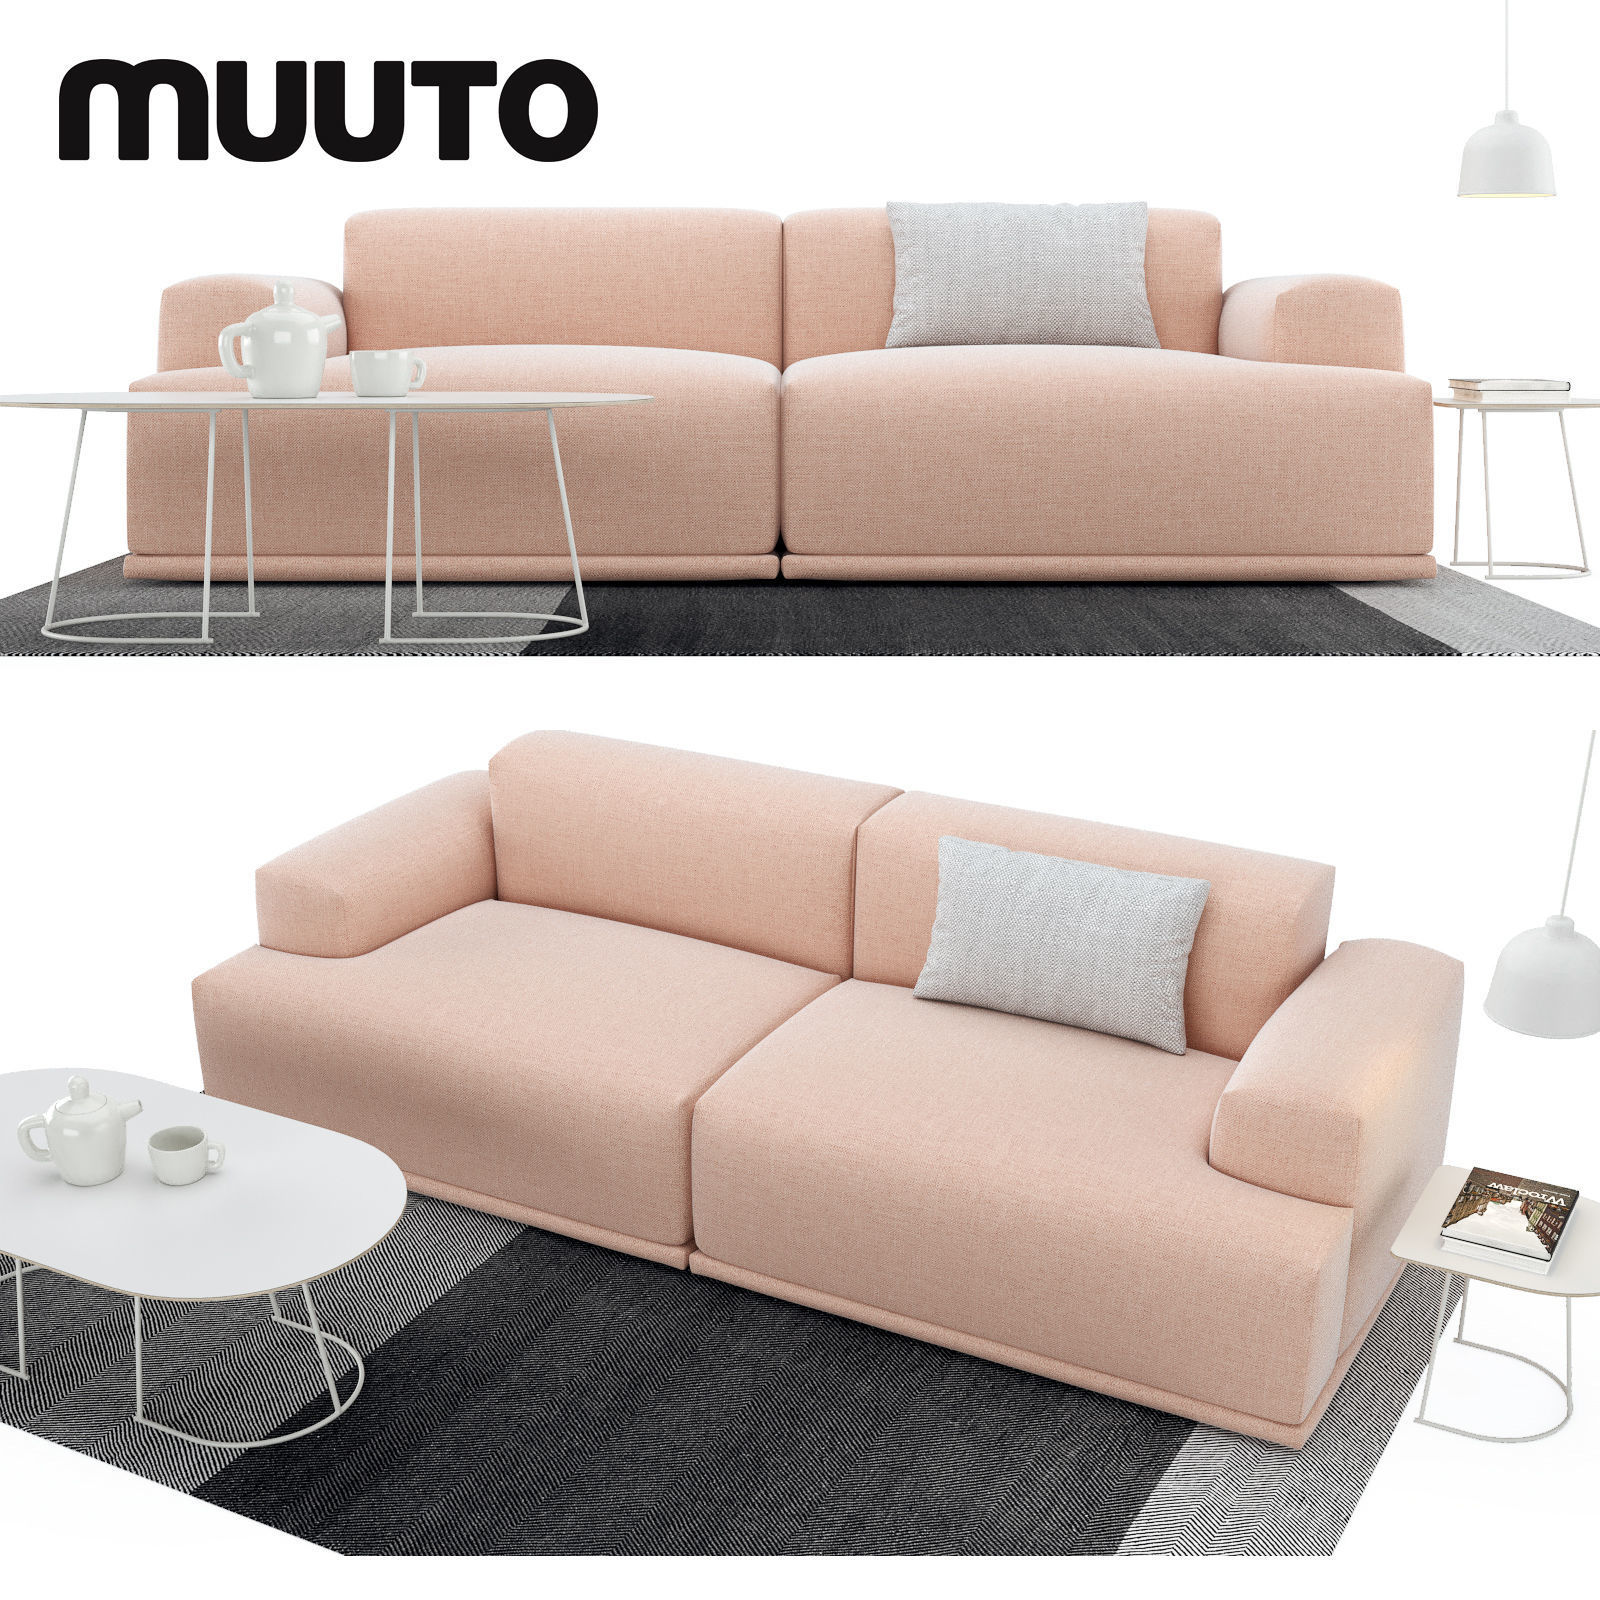 Sofa set 3D model book